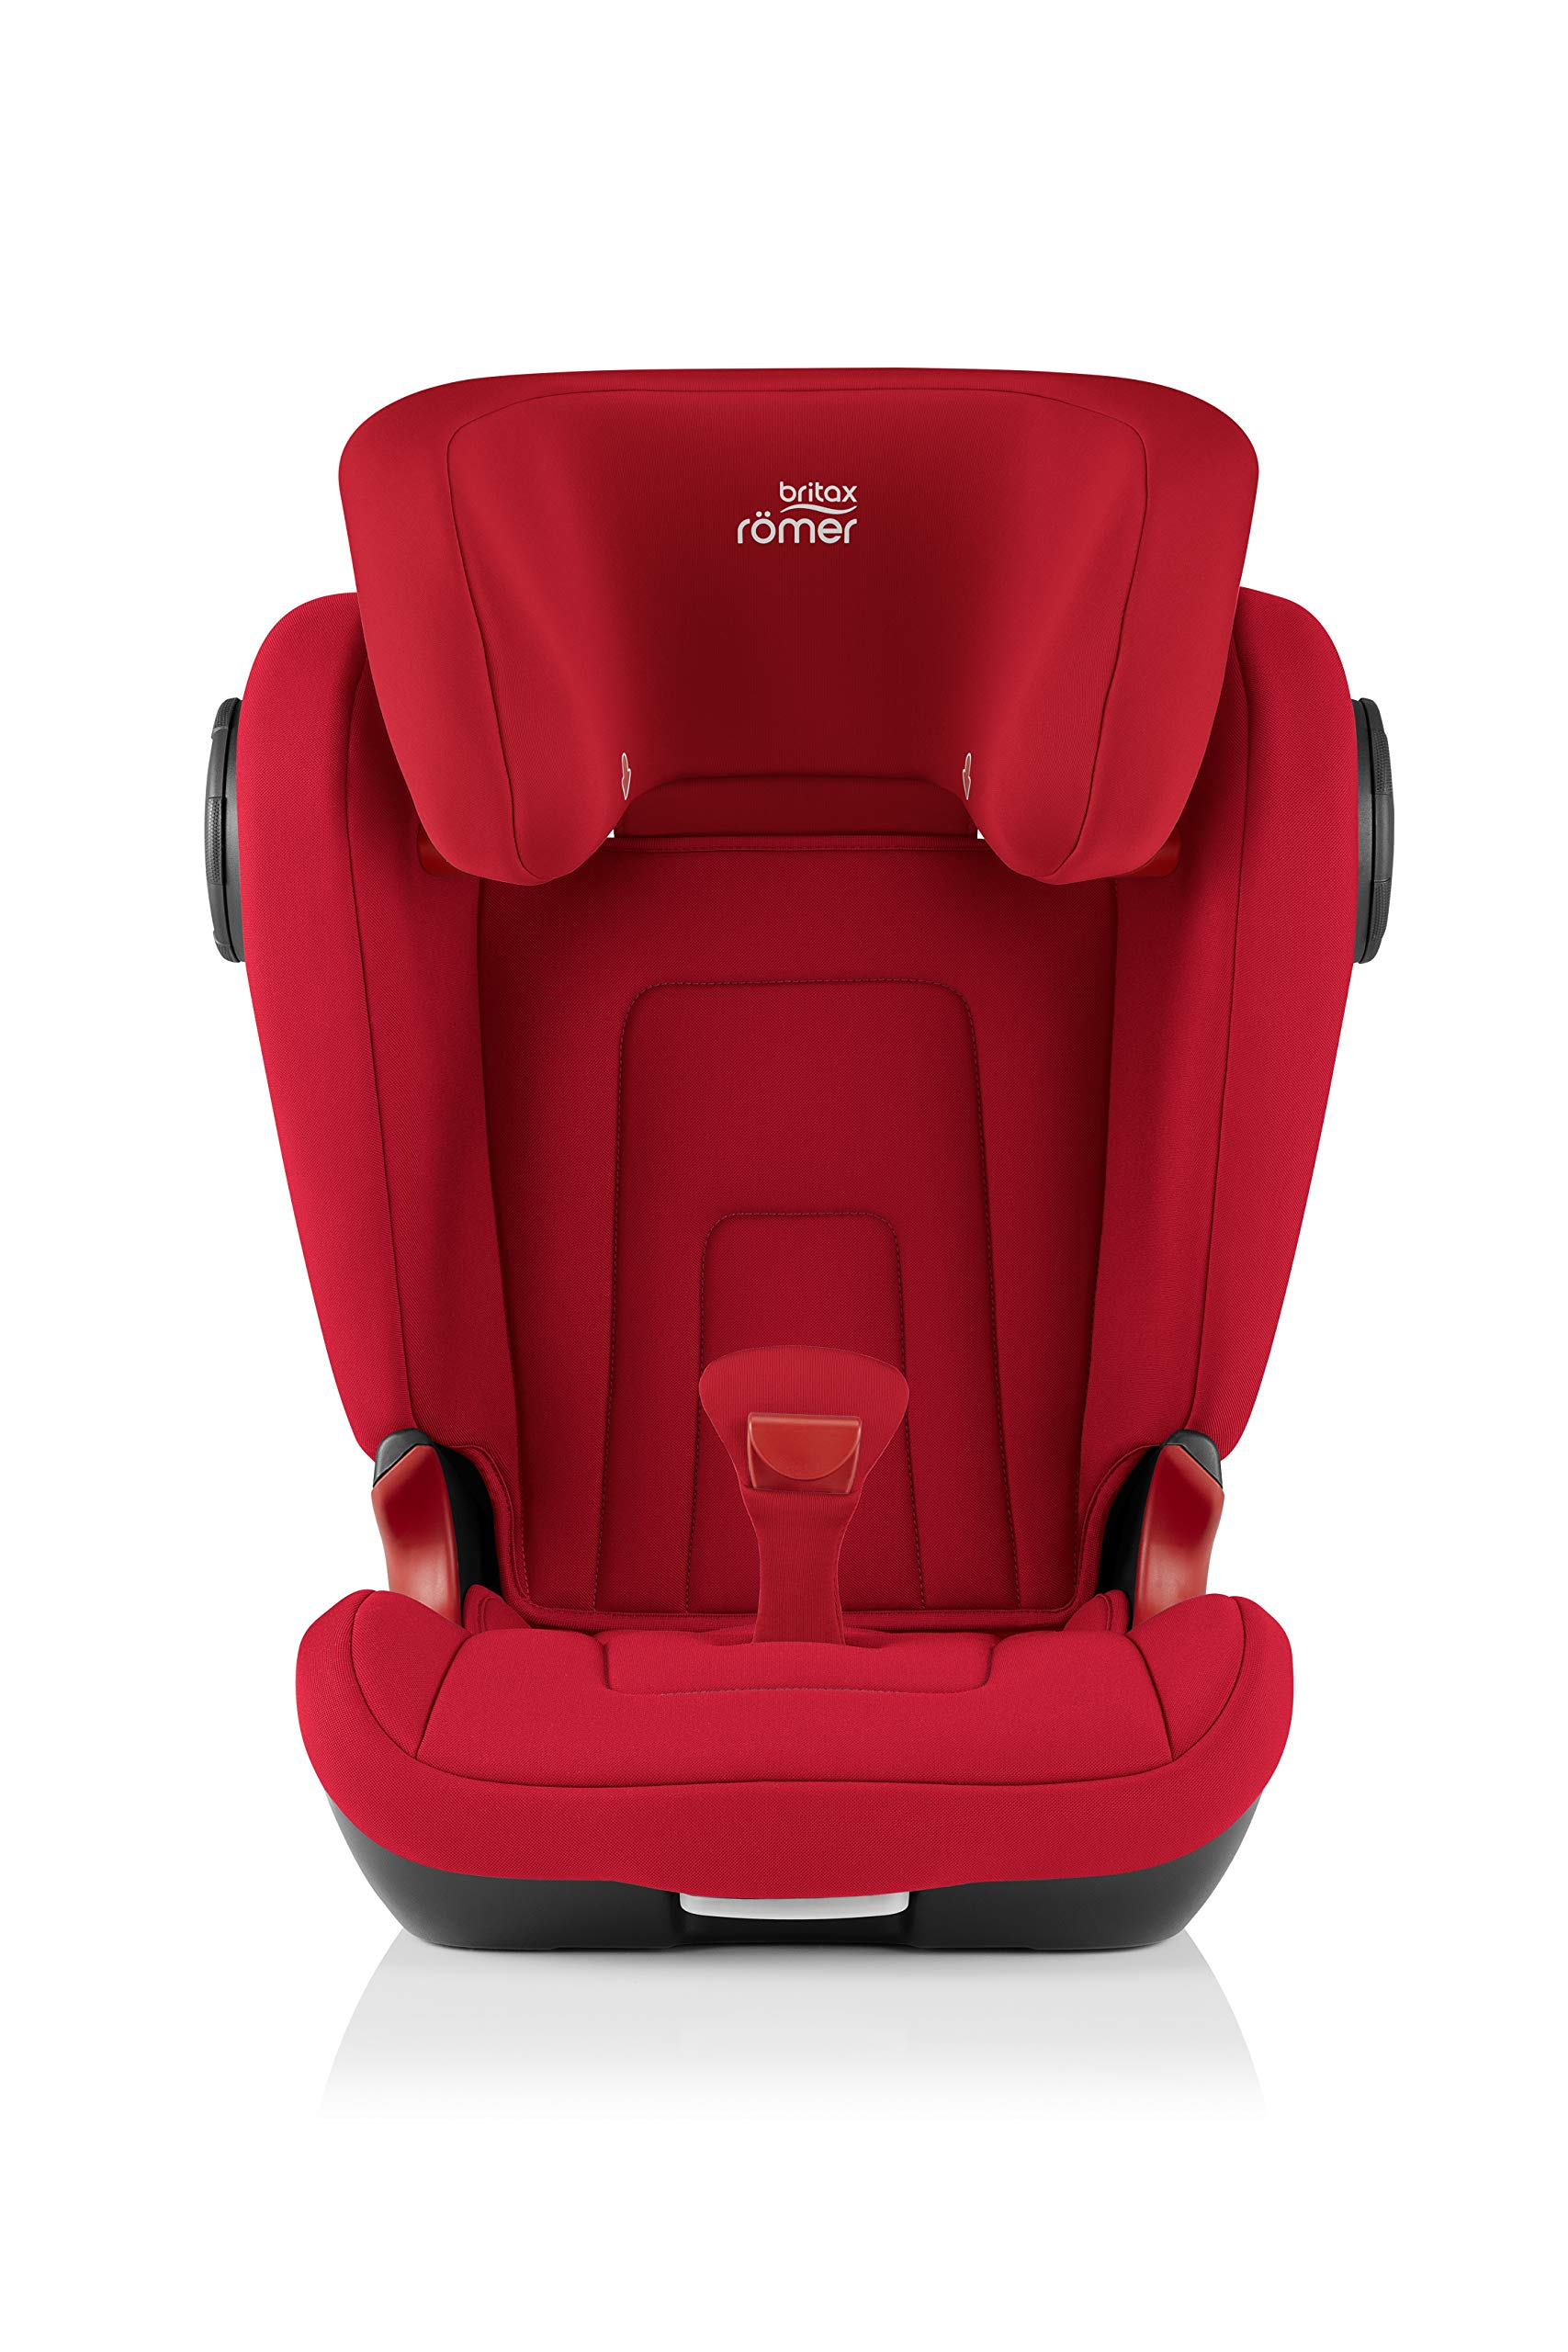 Britax Römer KIDFIX² S Group 2-3 (15-36kg) Car Seat - Fire Red Britax Römer Advanced side impact protection - sict offers superior protection to your child in the event of a side collision. reducing impact forces by minimising the distance between the car and the car seat. Secure guard - helps to protect your child's delicate abdominal area by adding an extra - a 4th - contact point to the 3-point seat belt. High back booster - protects your child in 3 ways: provides head to hip protection; belt guides provide correct positioning of the seat belt and the padded headrest provides safety and comfort. 2